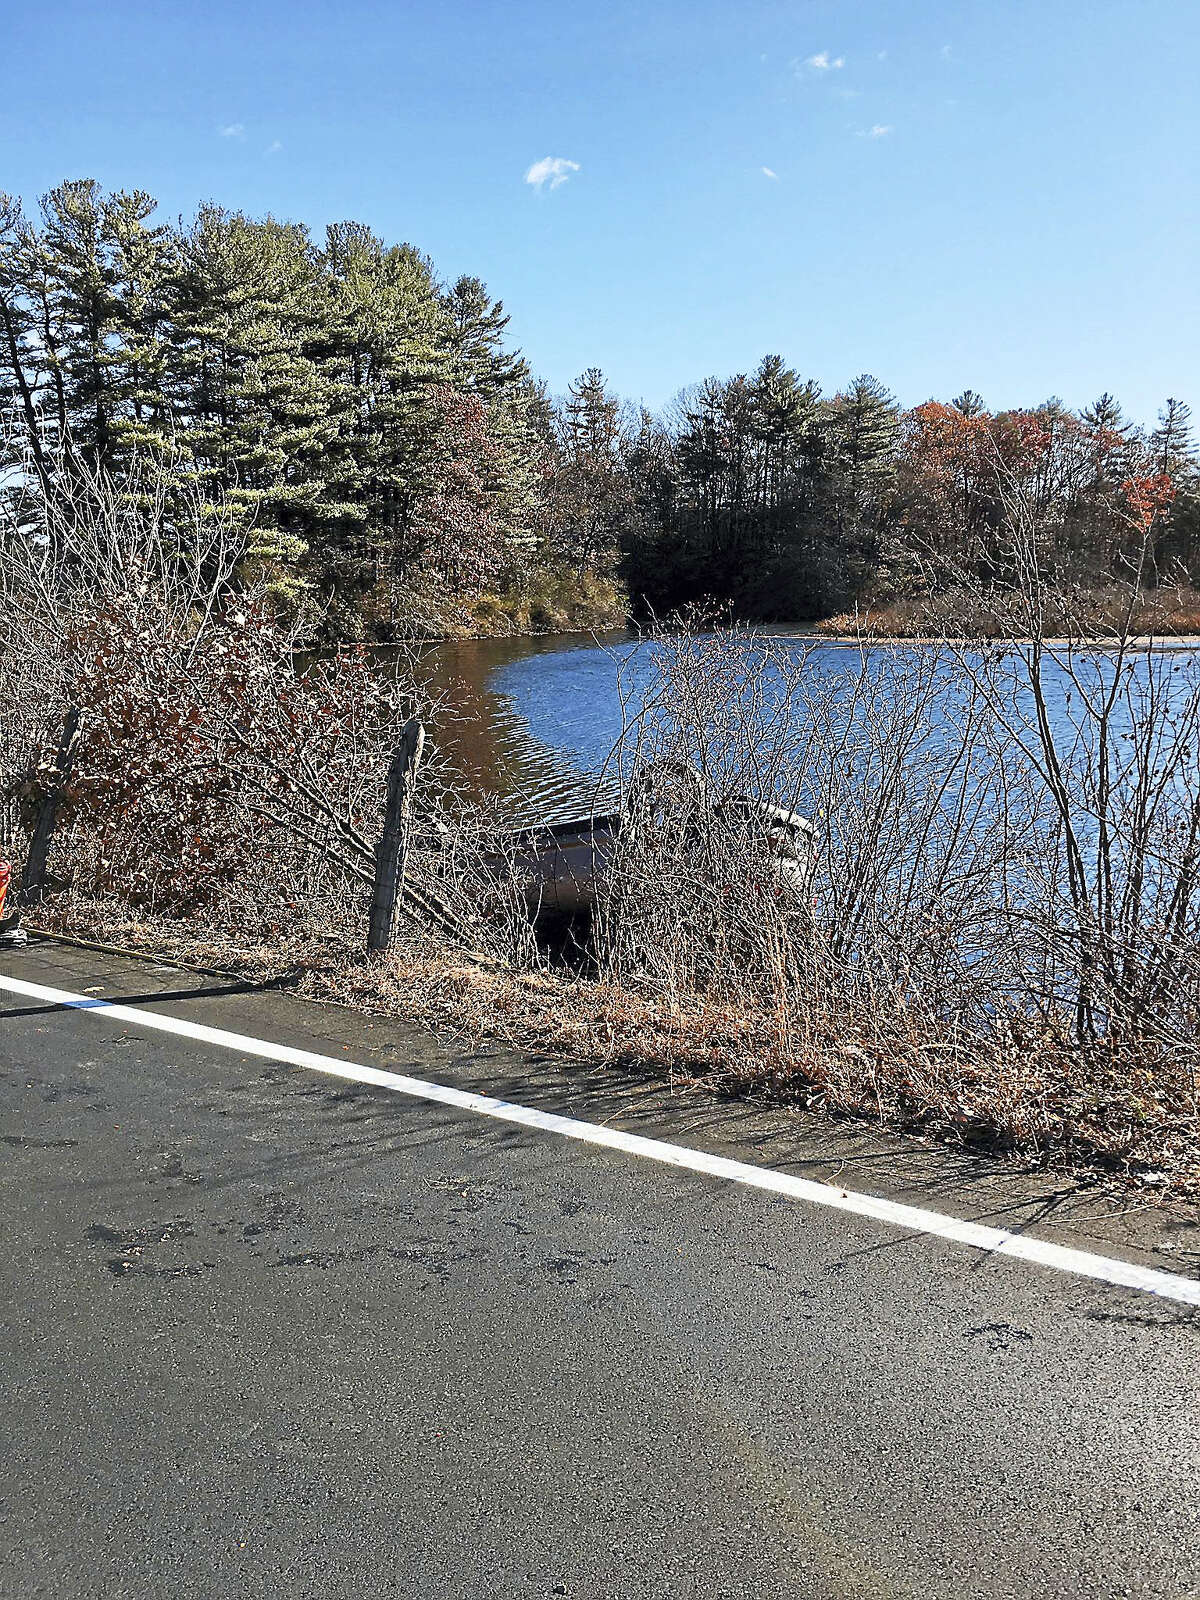 Rescuers pulled a woman out of a car after it went into the water on Waite Street in Hamden on Tuesday afternoon.